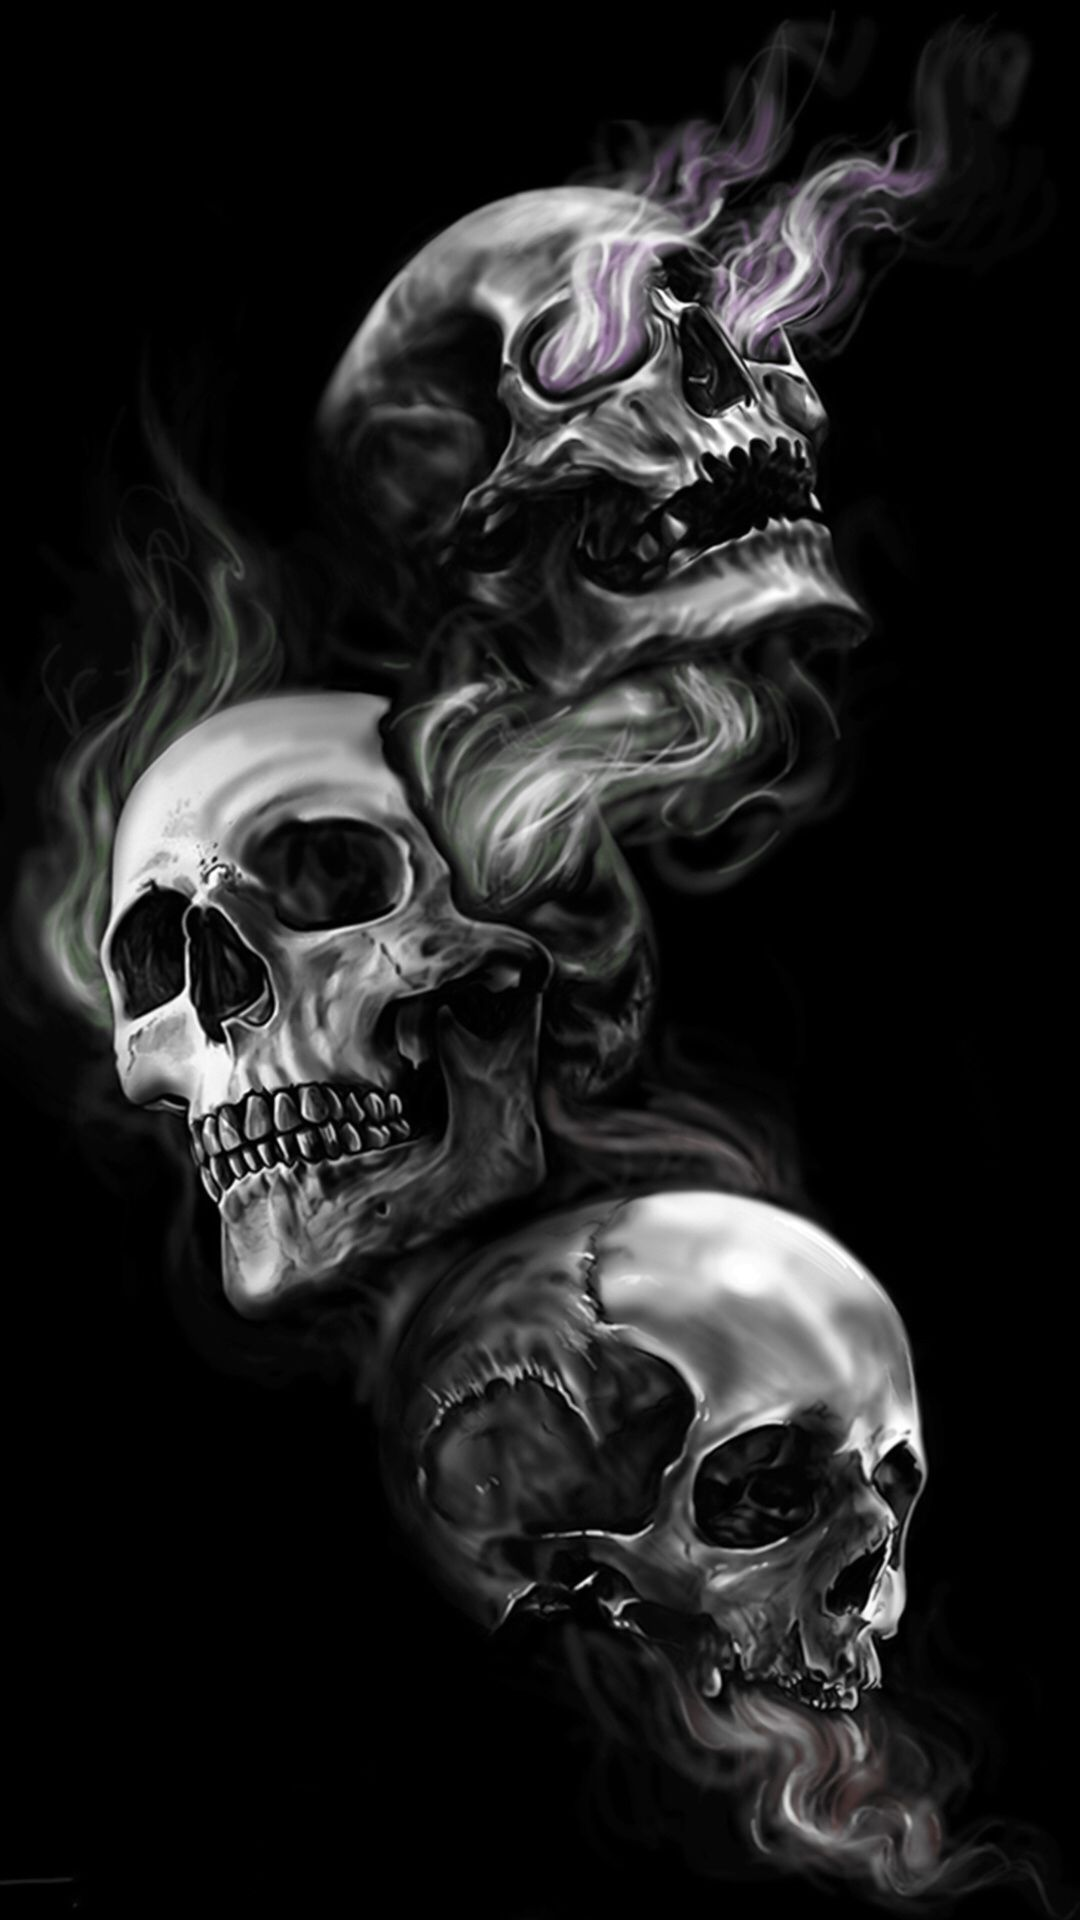 Gangster Skull Wallpapers Top Free Gangster Skull Backgrounds Wallpaperaccess